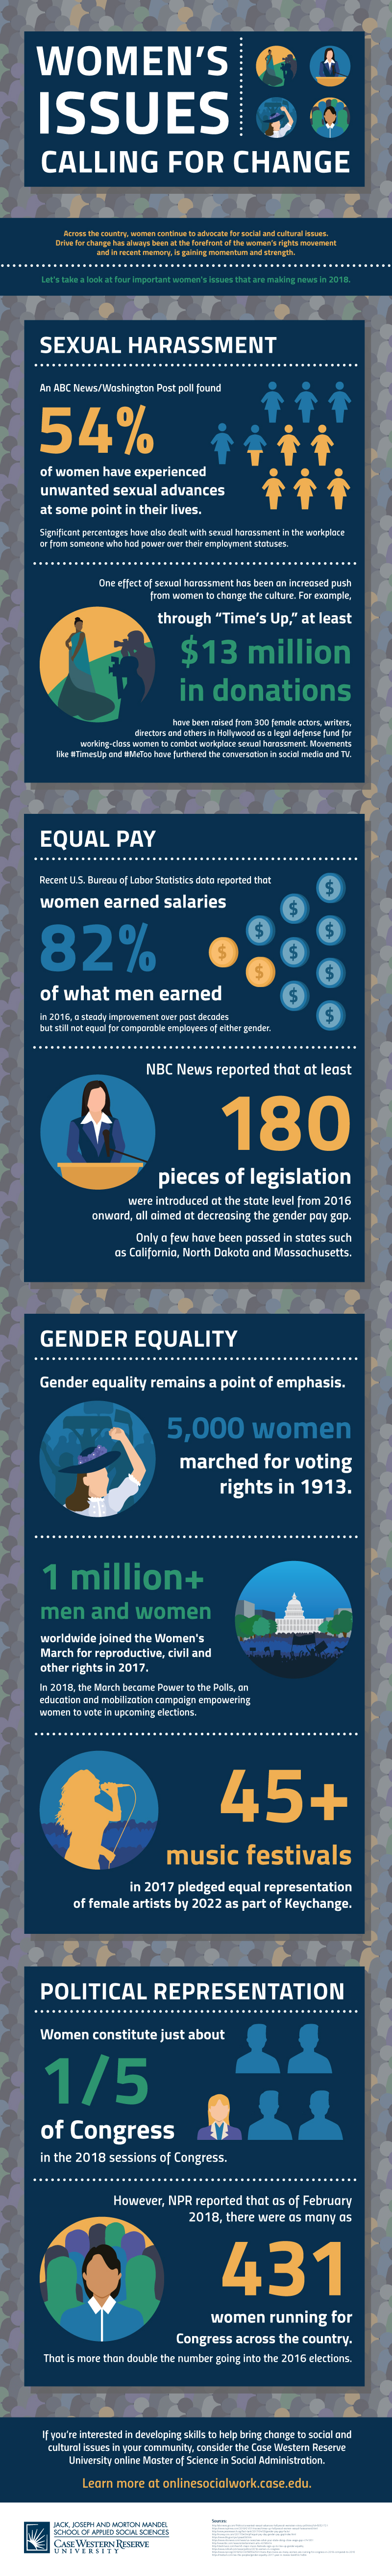 Infographic: Women's Issues Calling for Change